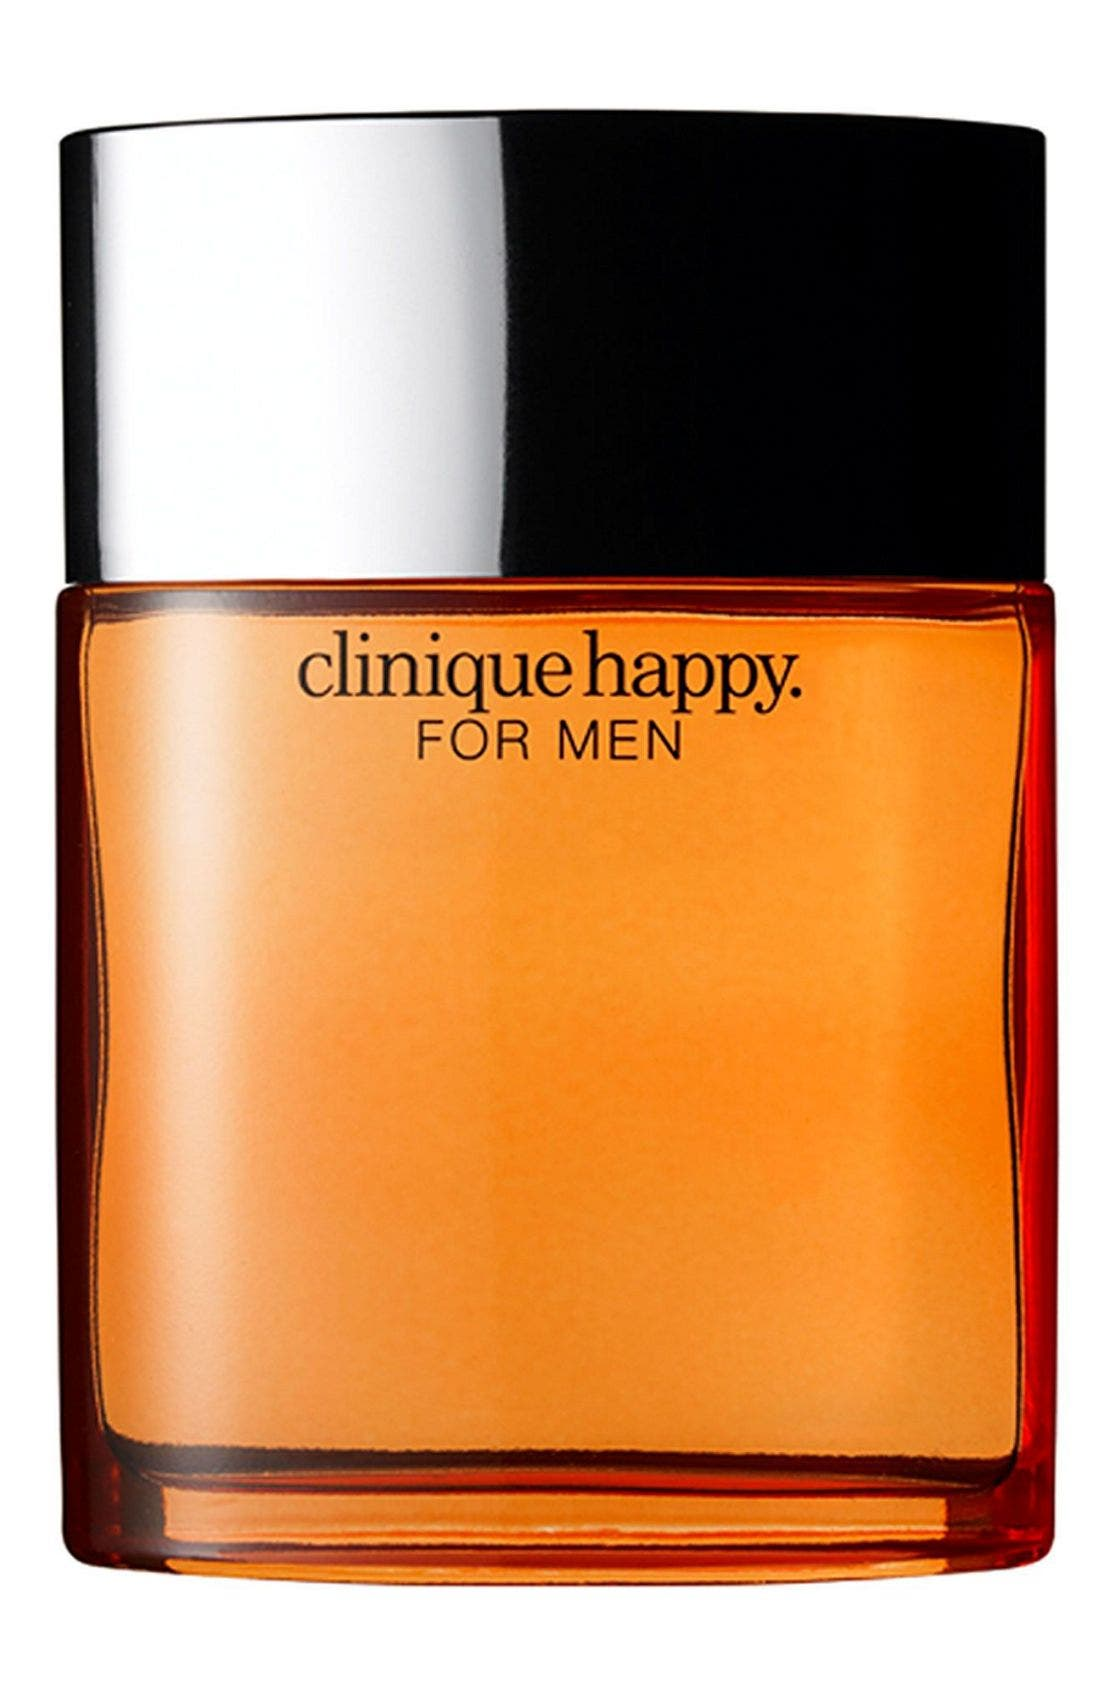 Clinique 'Happy' for Men Cologne Spray